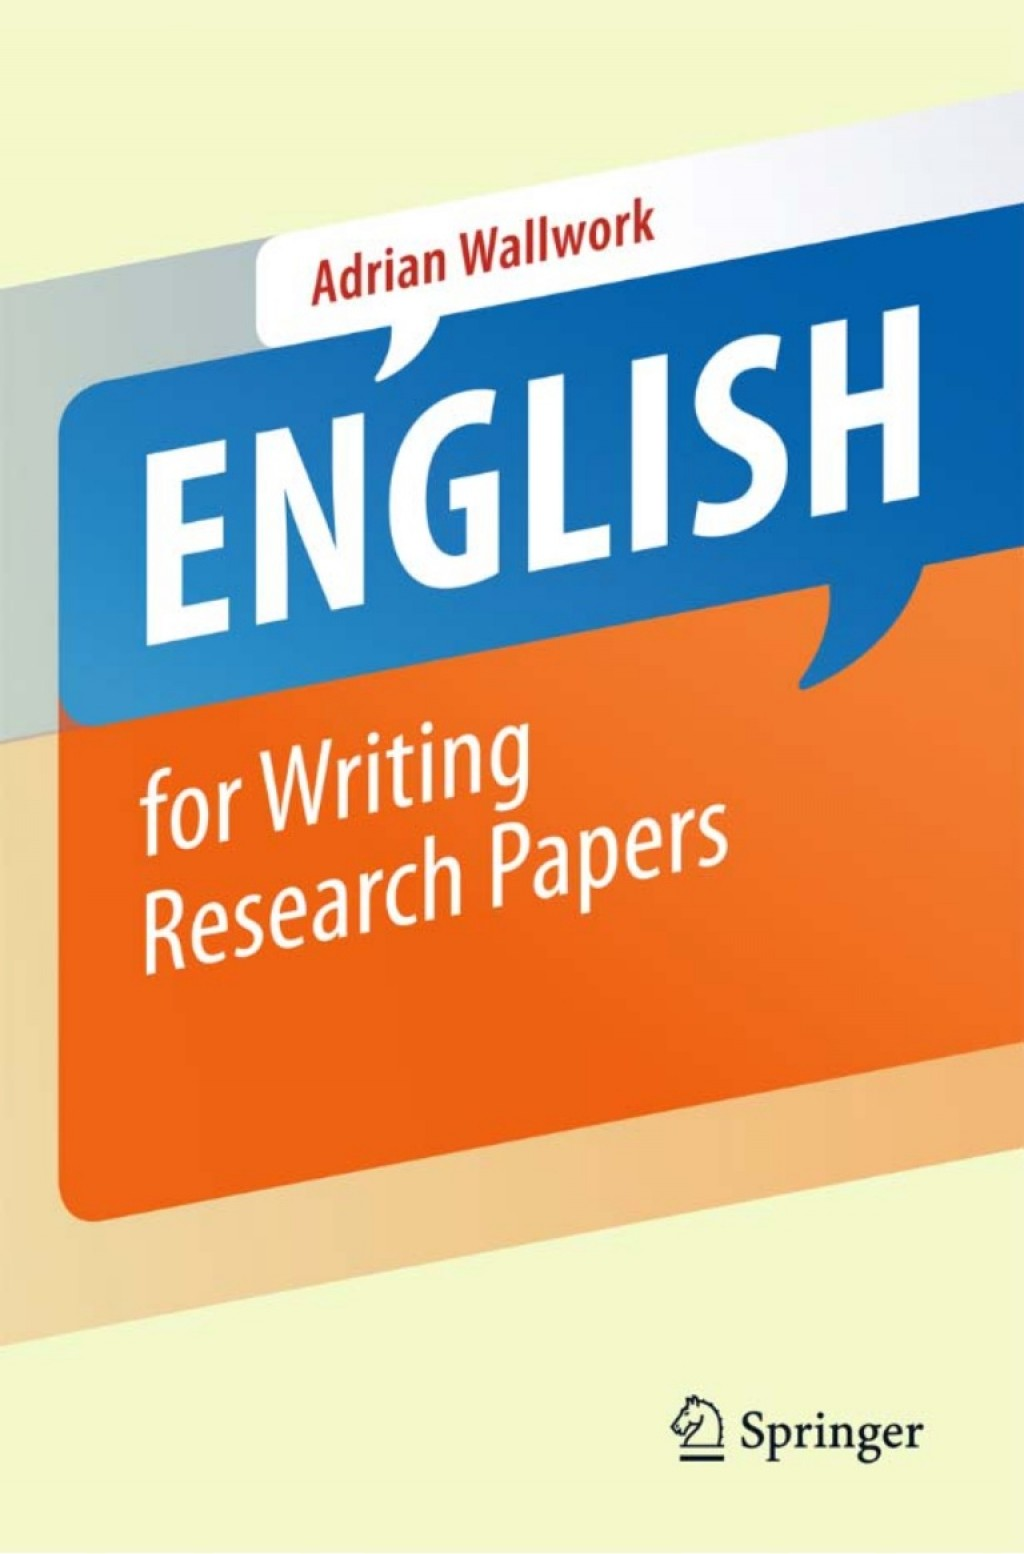 019 Englishforwritingresearchpapers Conversion Gate01 Thumbnail Writing Research Striking Paper Papers By James Lester Pdf A Complete Guide 16th Edition Outline Large